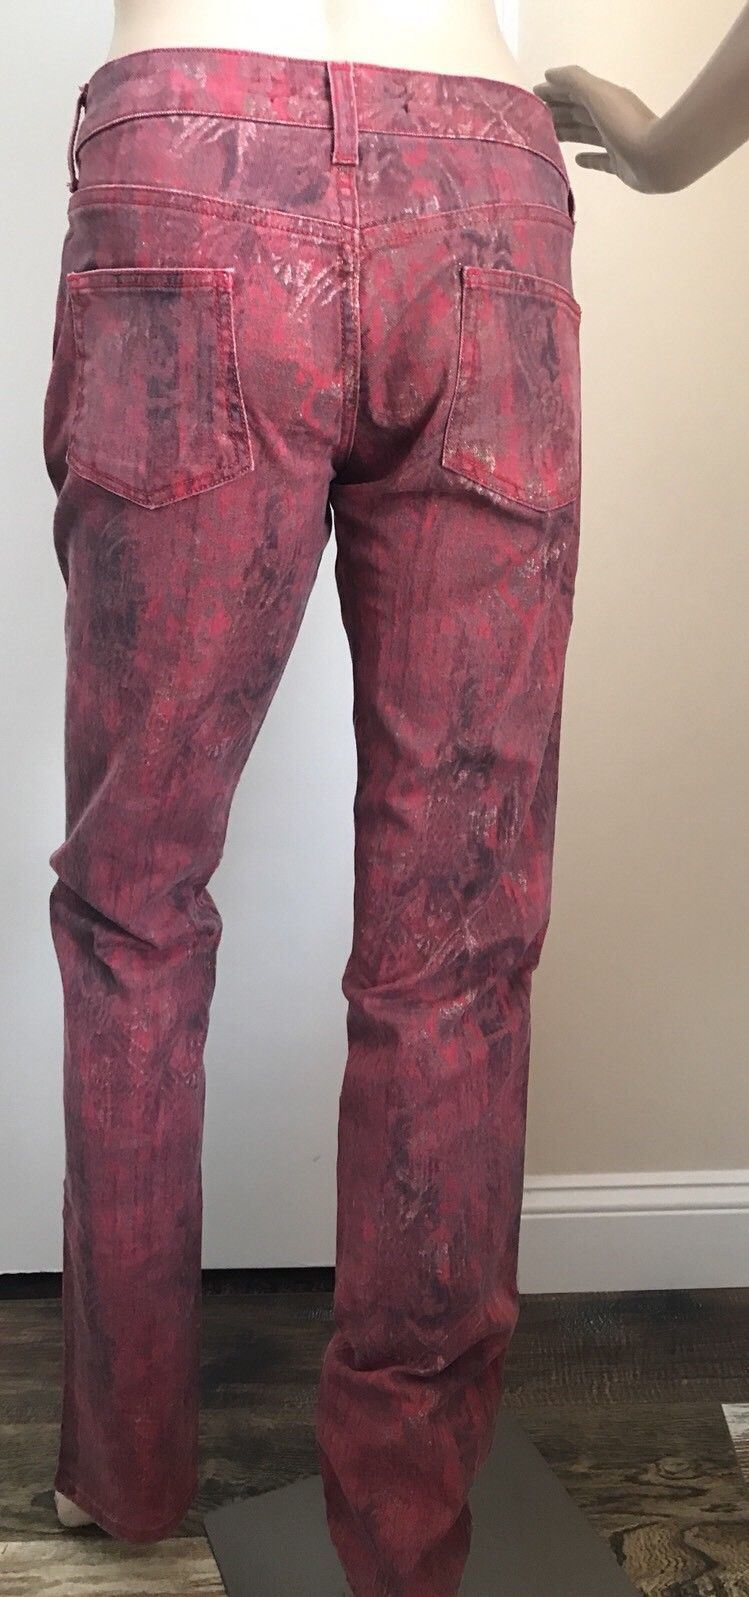 New $670 Just Cavalli Women's Pants Jeans Burgundy 43 ( 29 US ) Italy - BAYSUPERSTORE